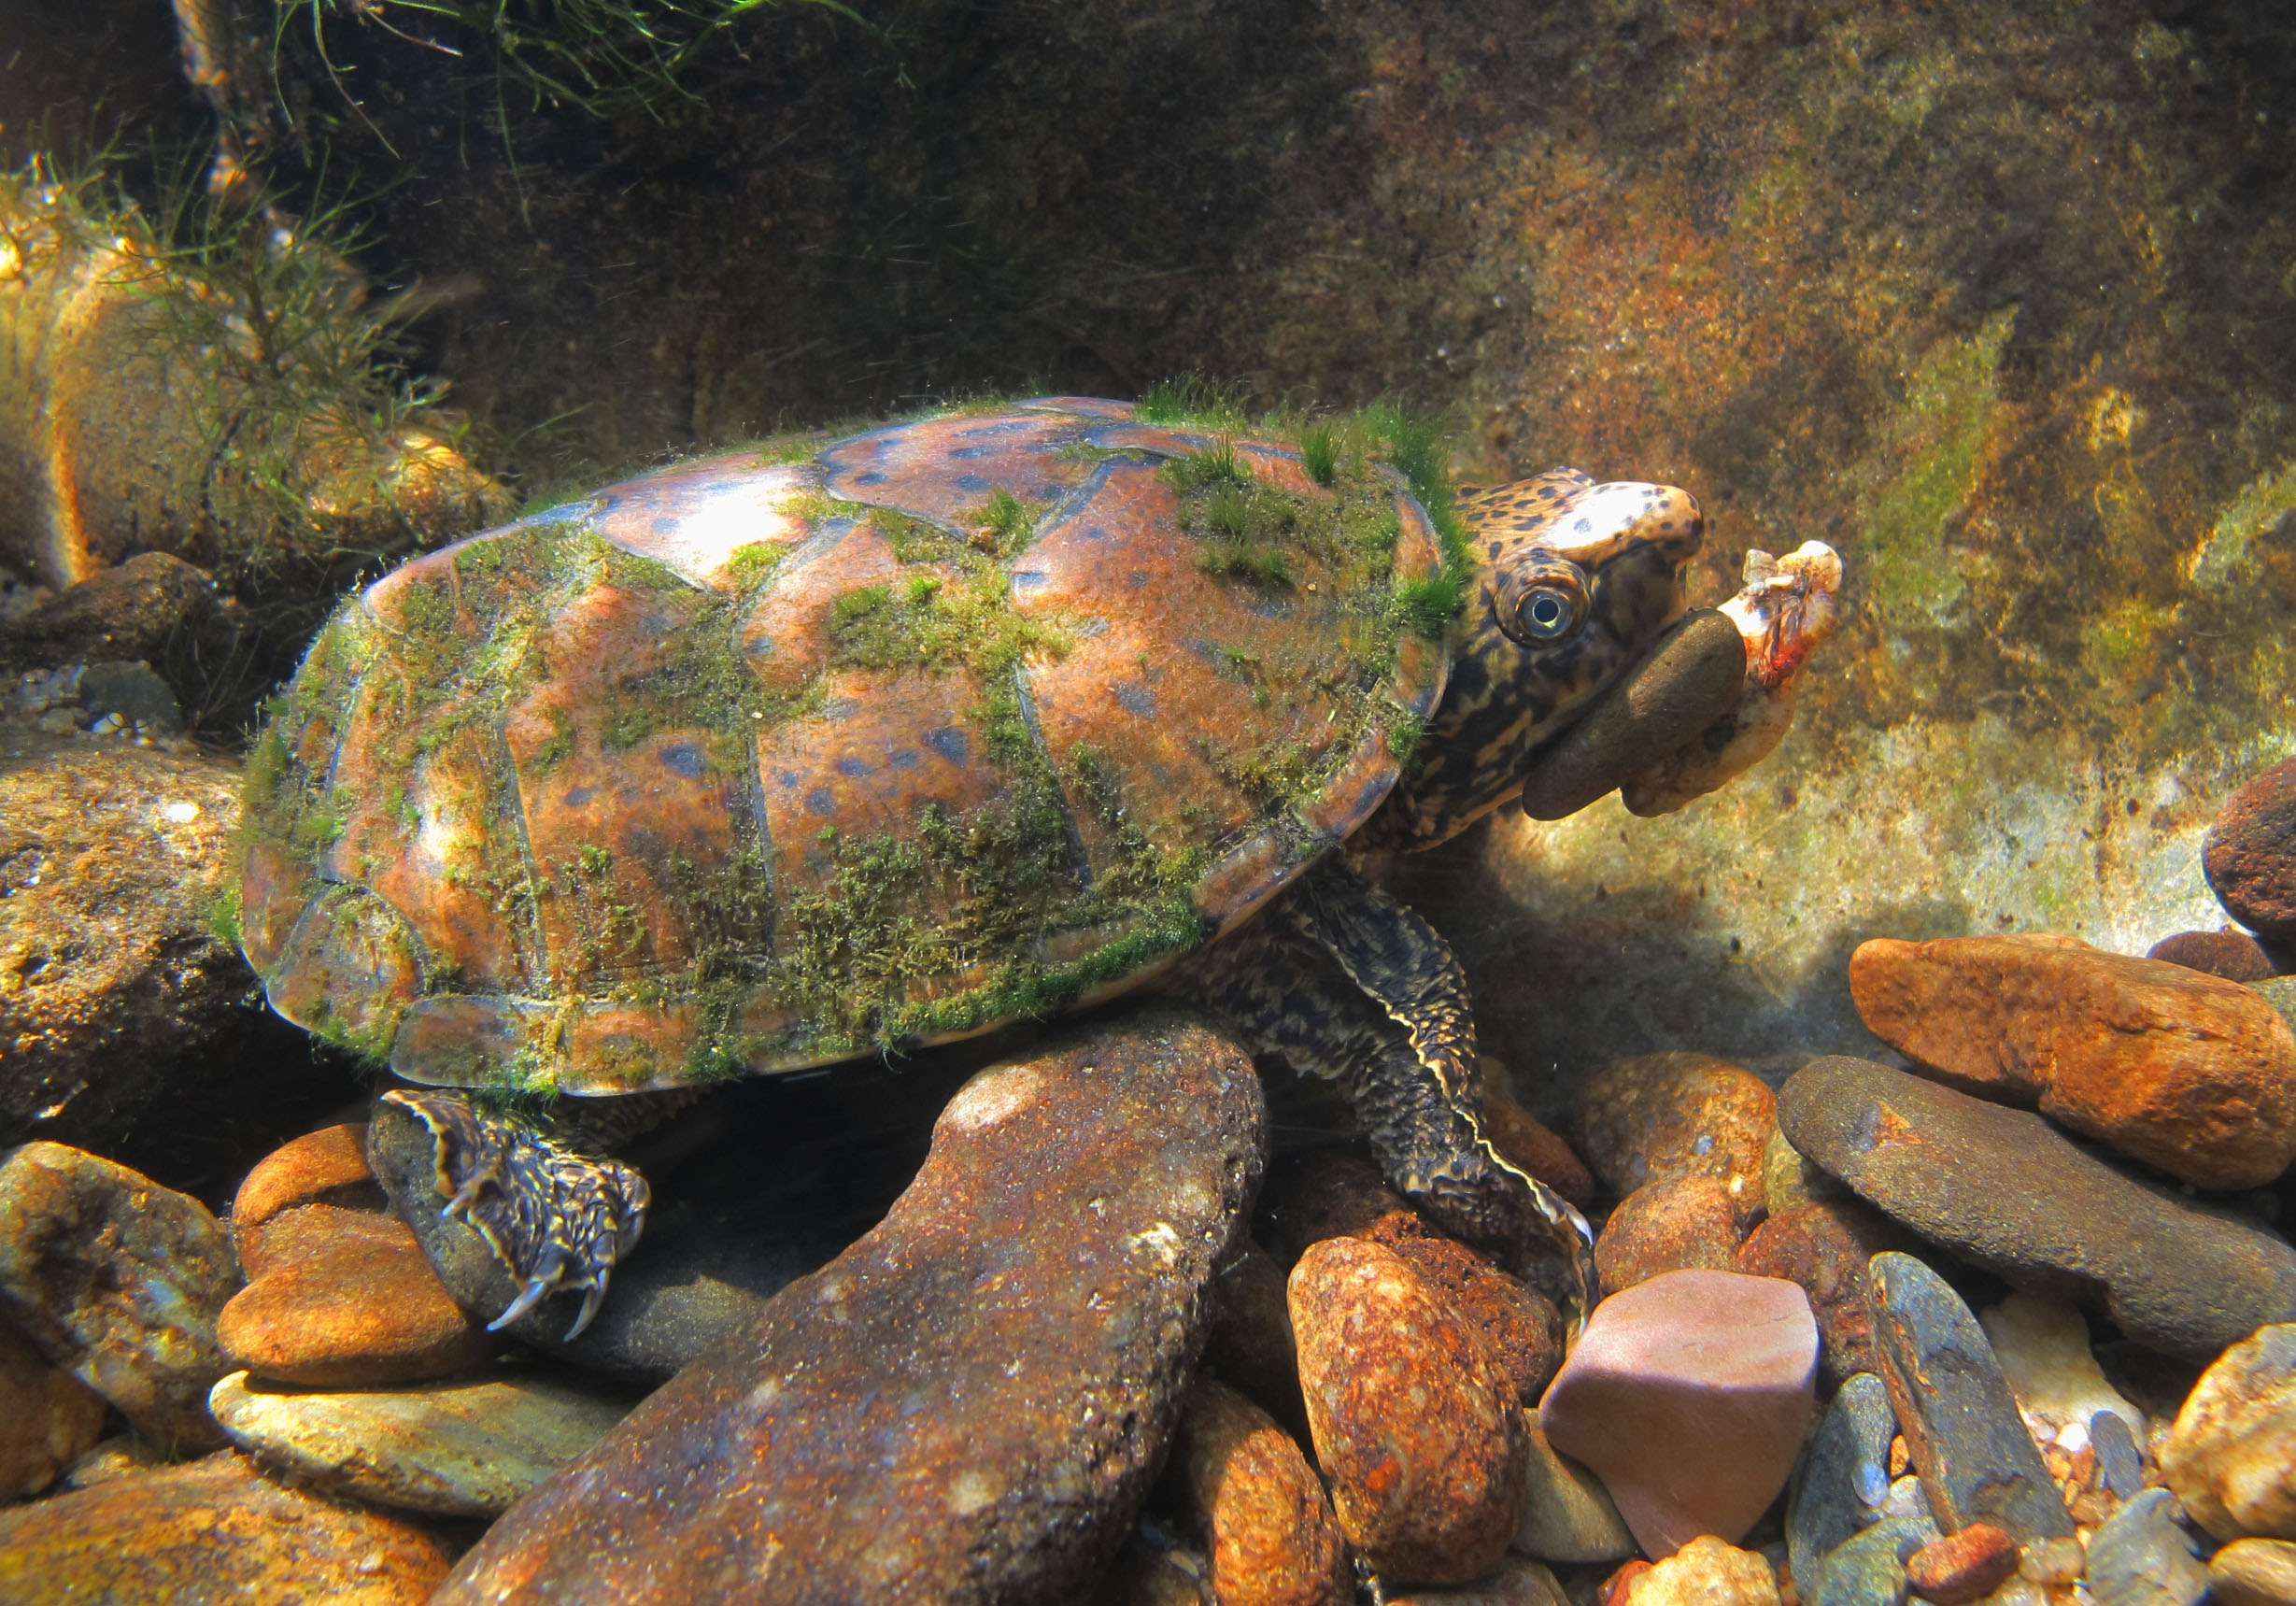 Common Water Turtles : ... common river cooters and mammoth snapping turtles. Photo by Amos Tuck